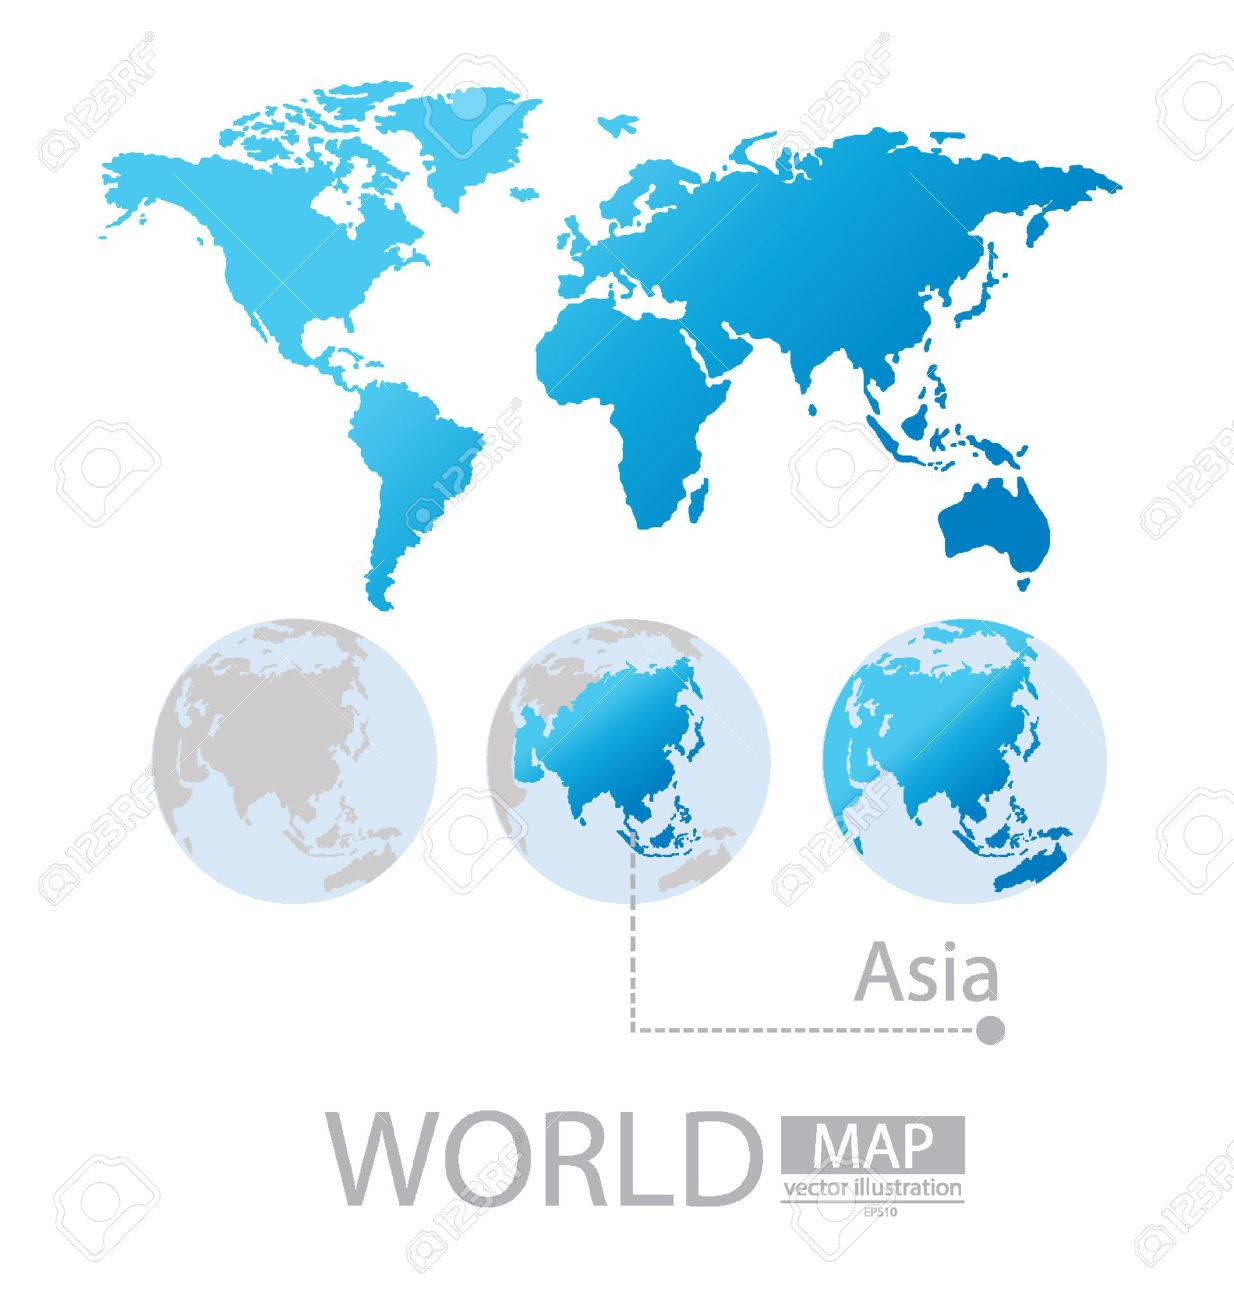 Asia world map vector illustration royalty free cliparts vectors asia world map vector illustration stock vector 24863314 gumiabroncs Images